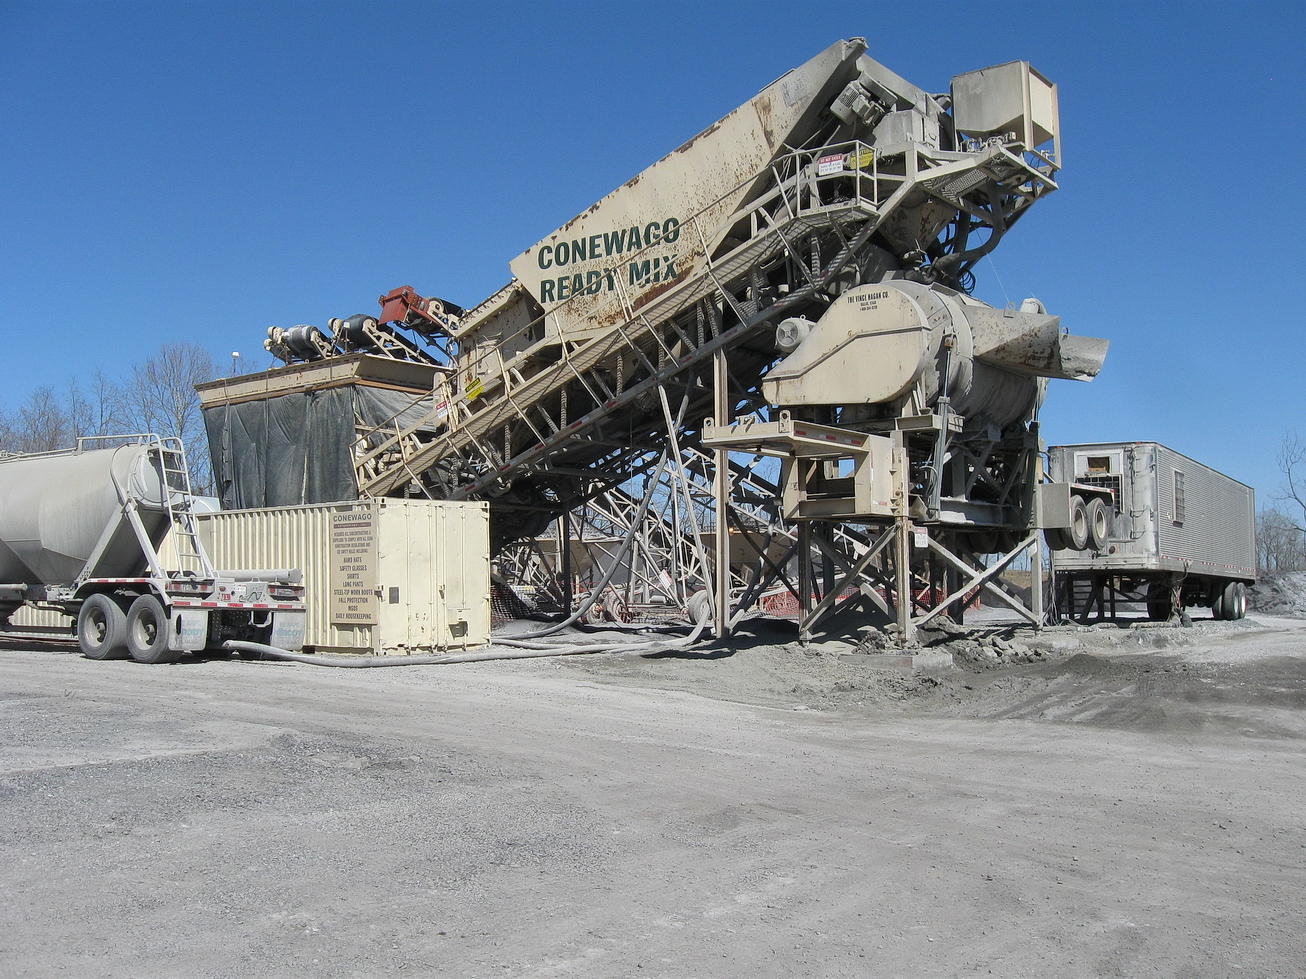 Conewago Manufacturing Mobile Ready-Mix Project - Conewago Manufacturing Mobile Ready-Mix Project - Roller Compacted Concrete (RCC) – ESSROC